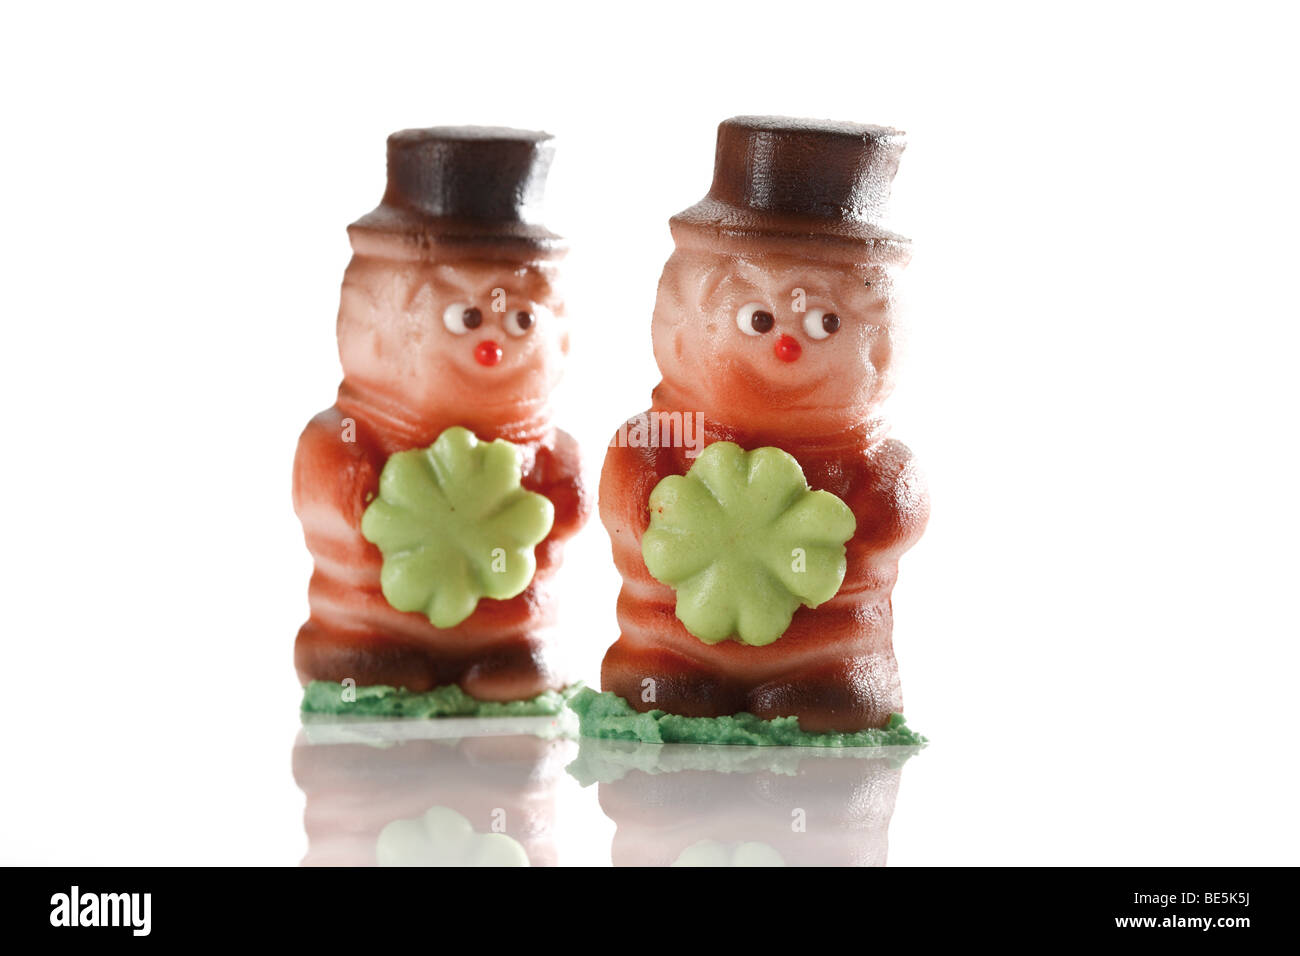 Two small chimney sweepers, made of marzipan - Stock Image